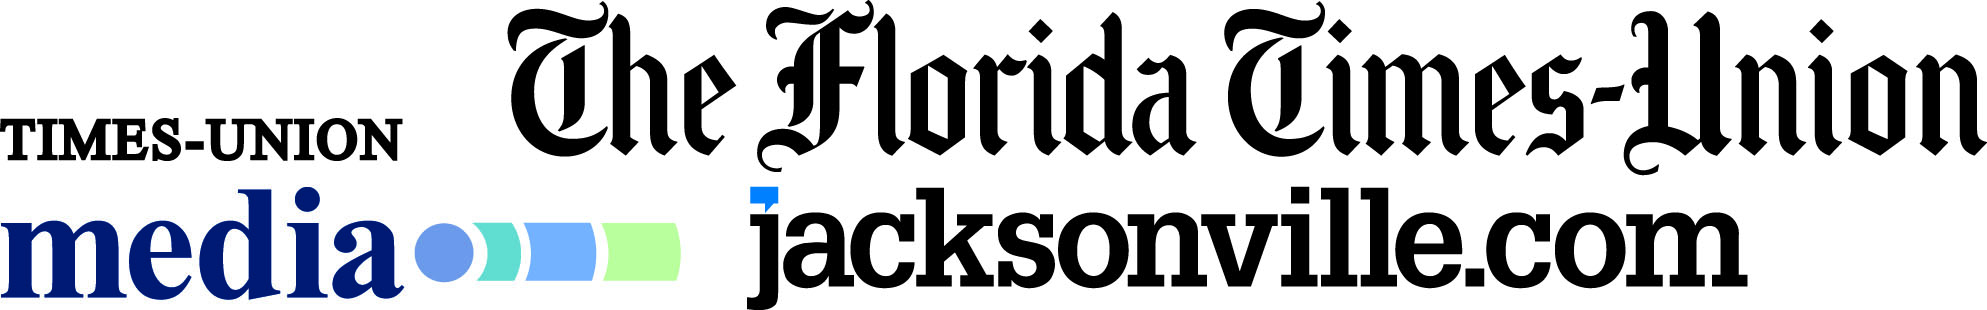 The Florida Times-Union: Jacksonville.com